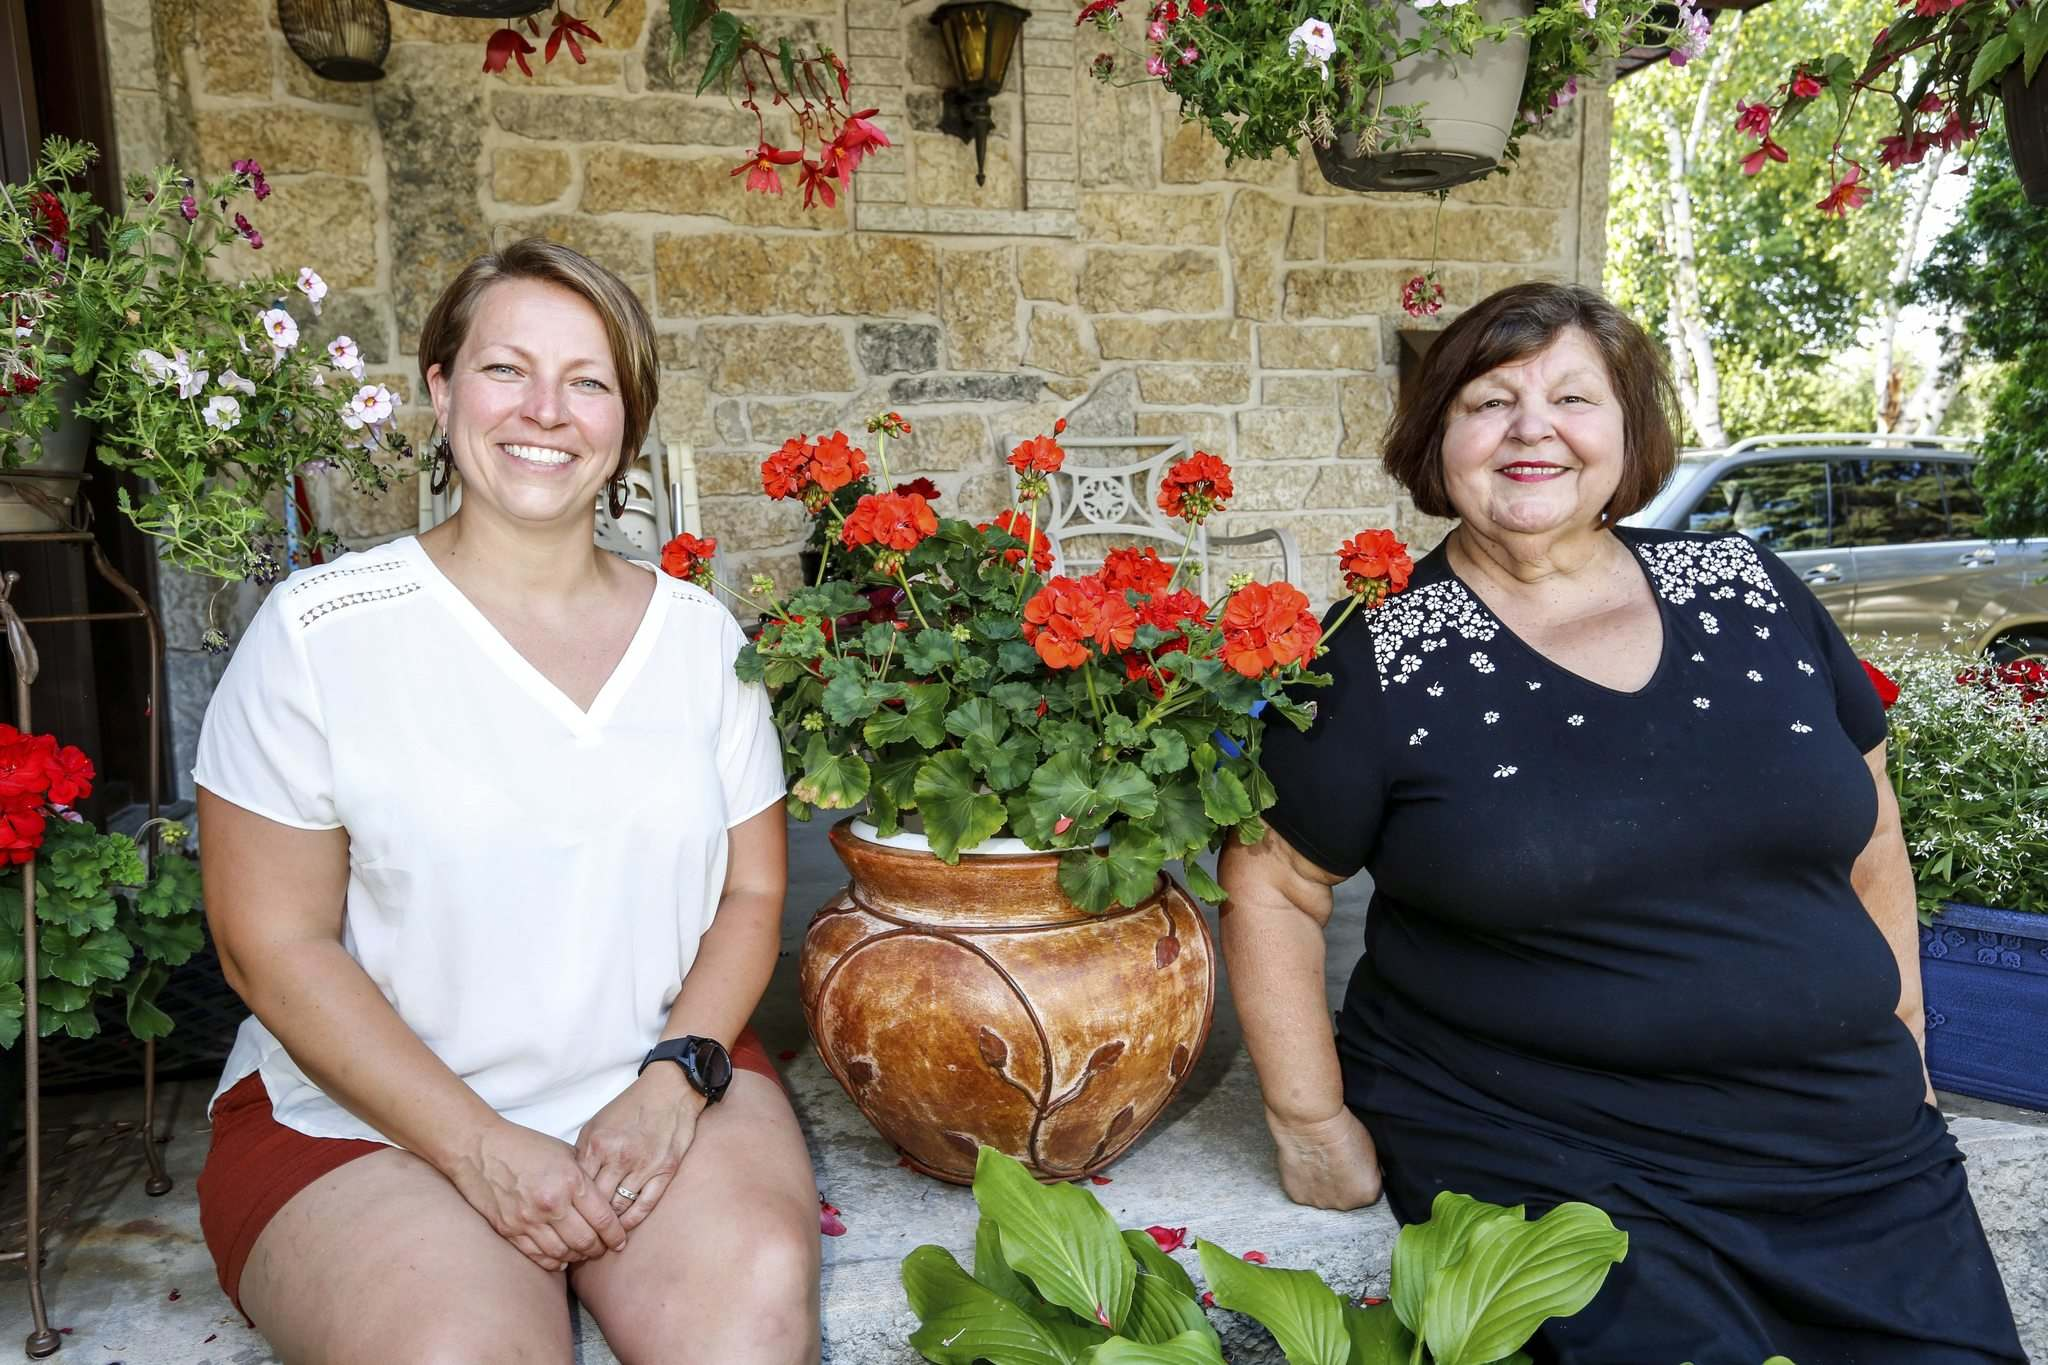 JUSTIN SAMANSKI-LANGILLE / WINNIPEG FREE PRESS</p><p>Liz Kovach (right) with her daughter, Liz Jr. The Kovaches have been an integral part of the Hungary-Pannonia pavilion at Folklorama for decades.</p></p>